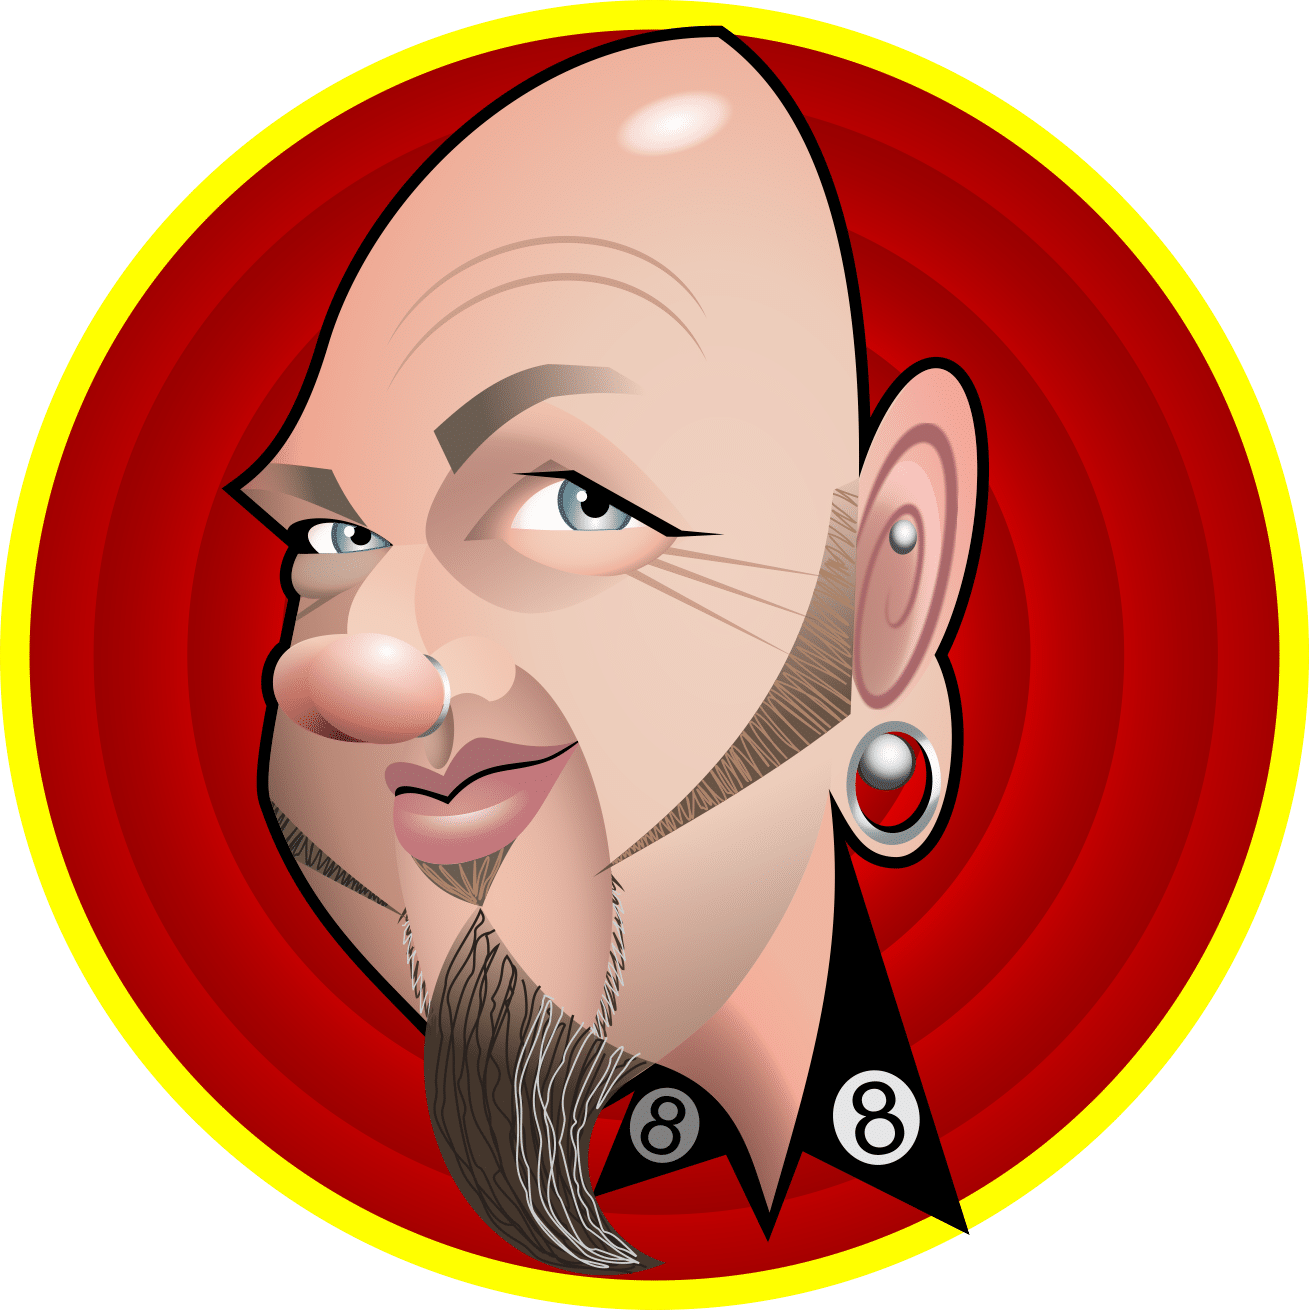 Digital Caricature gallery